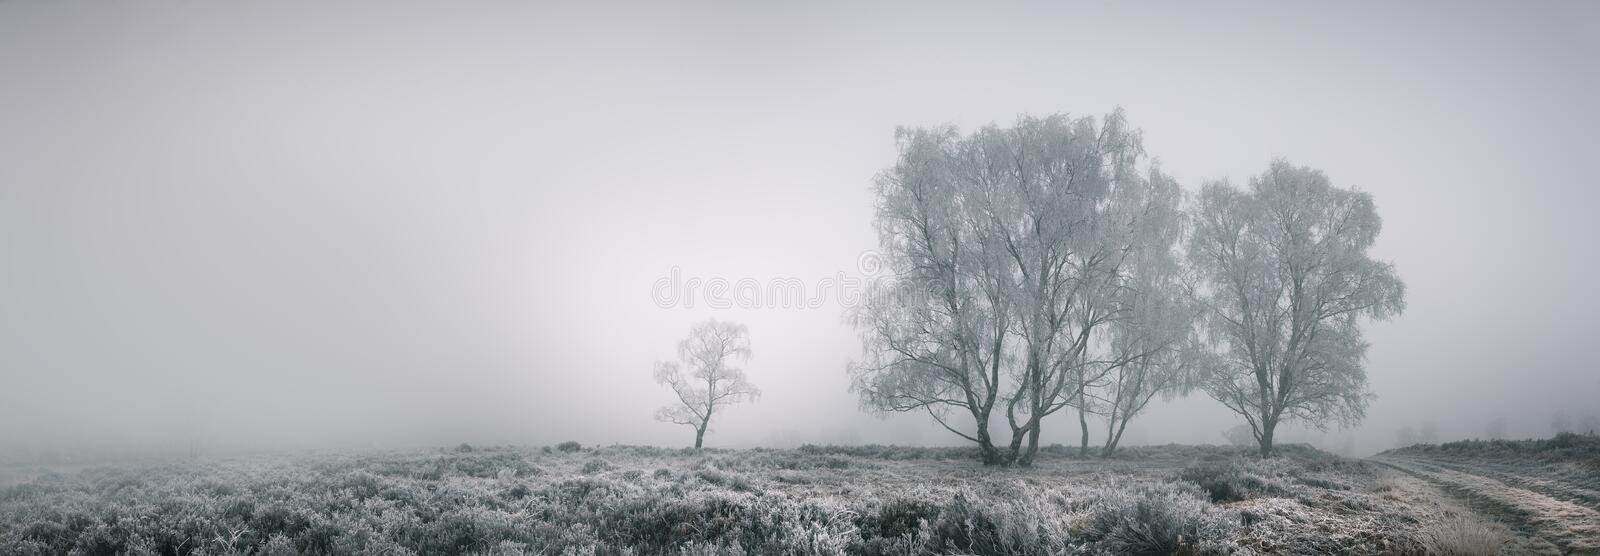 Download Cannock Chase stock photo. Image of panoramic, panorama - 28693556